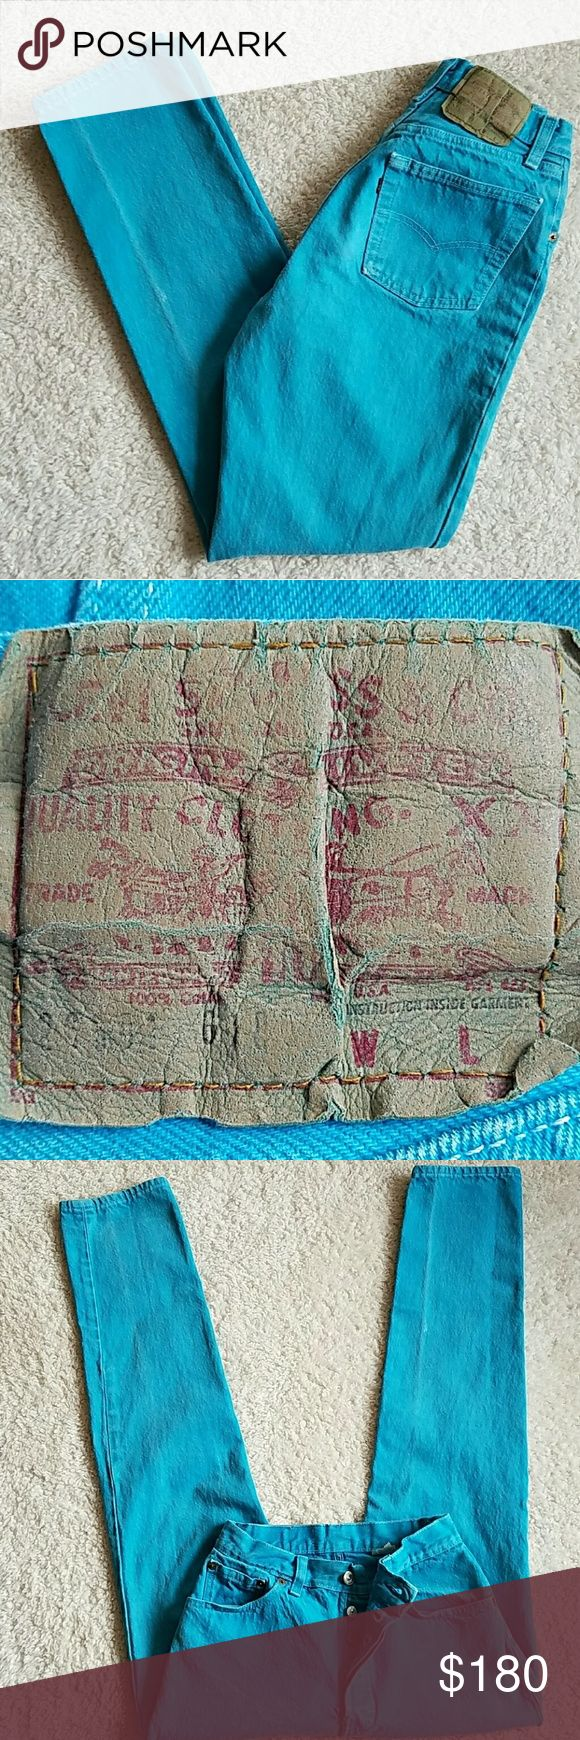 VINTAGE LEVI'S 501 BUTTONFLY JEANS LEVI'S 501 BUTTONFLY JEANS~VINTAGE ☆TURQUOISE☆RARE☆ TAGGED: 11 MEASURED: W25 L30 RISE:11 HIPS:36 TINY BIT OF DISTRESS AT BASE OF FLY #LEVI'S #501 #VINTAGE # #BUTTONFLY #DENIM #JEANS #OLD #TURQUOISE #25 #DISTRESSED #VINTAGE501  #VINTAGE LEVI'S  I LOVE THESE. I'VE THAT MOST OF MY LIFE ♡♡♡♡♡♡♡♡♡♡♡♡♡♡♡♡♡♡♡♡♡♡. PRICE IS FIRM. Vintage Jeans